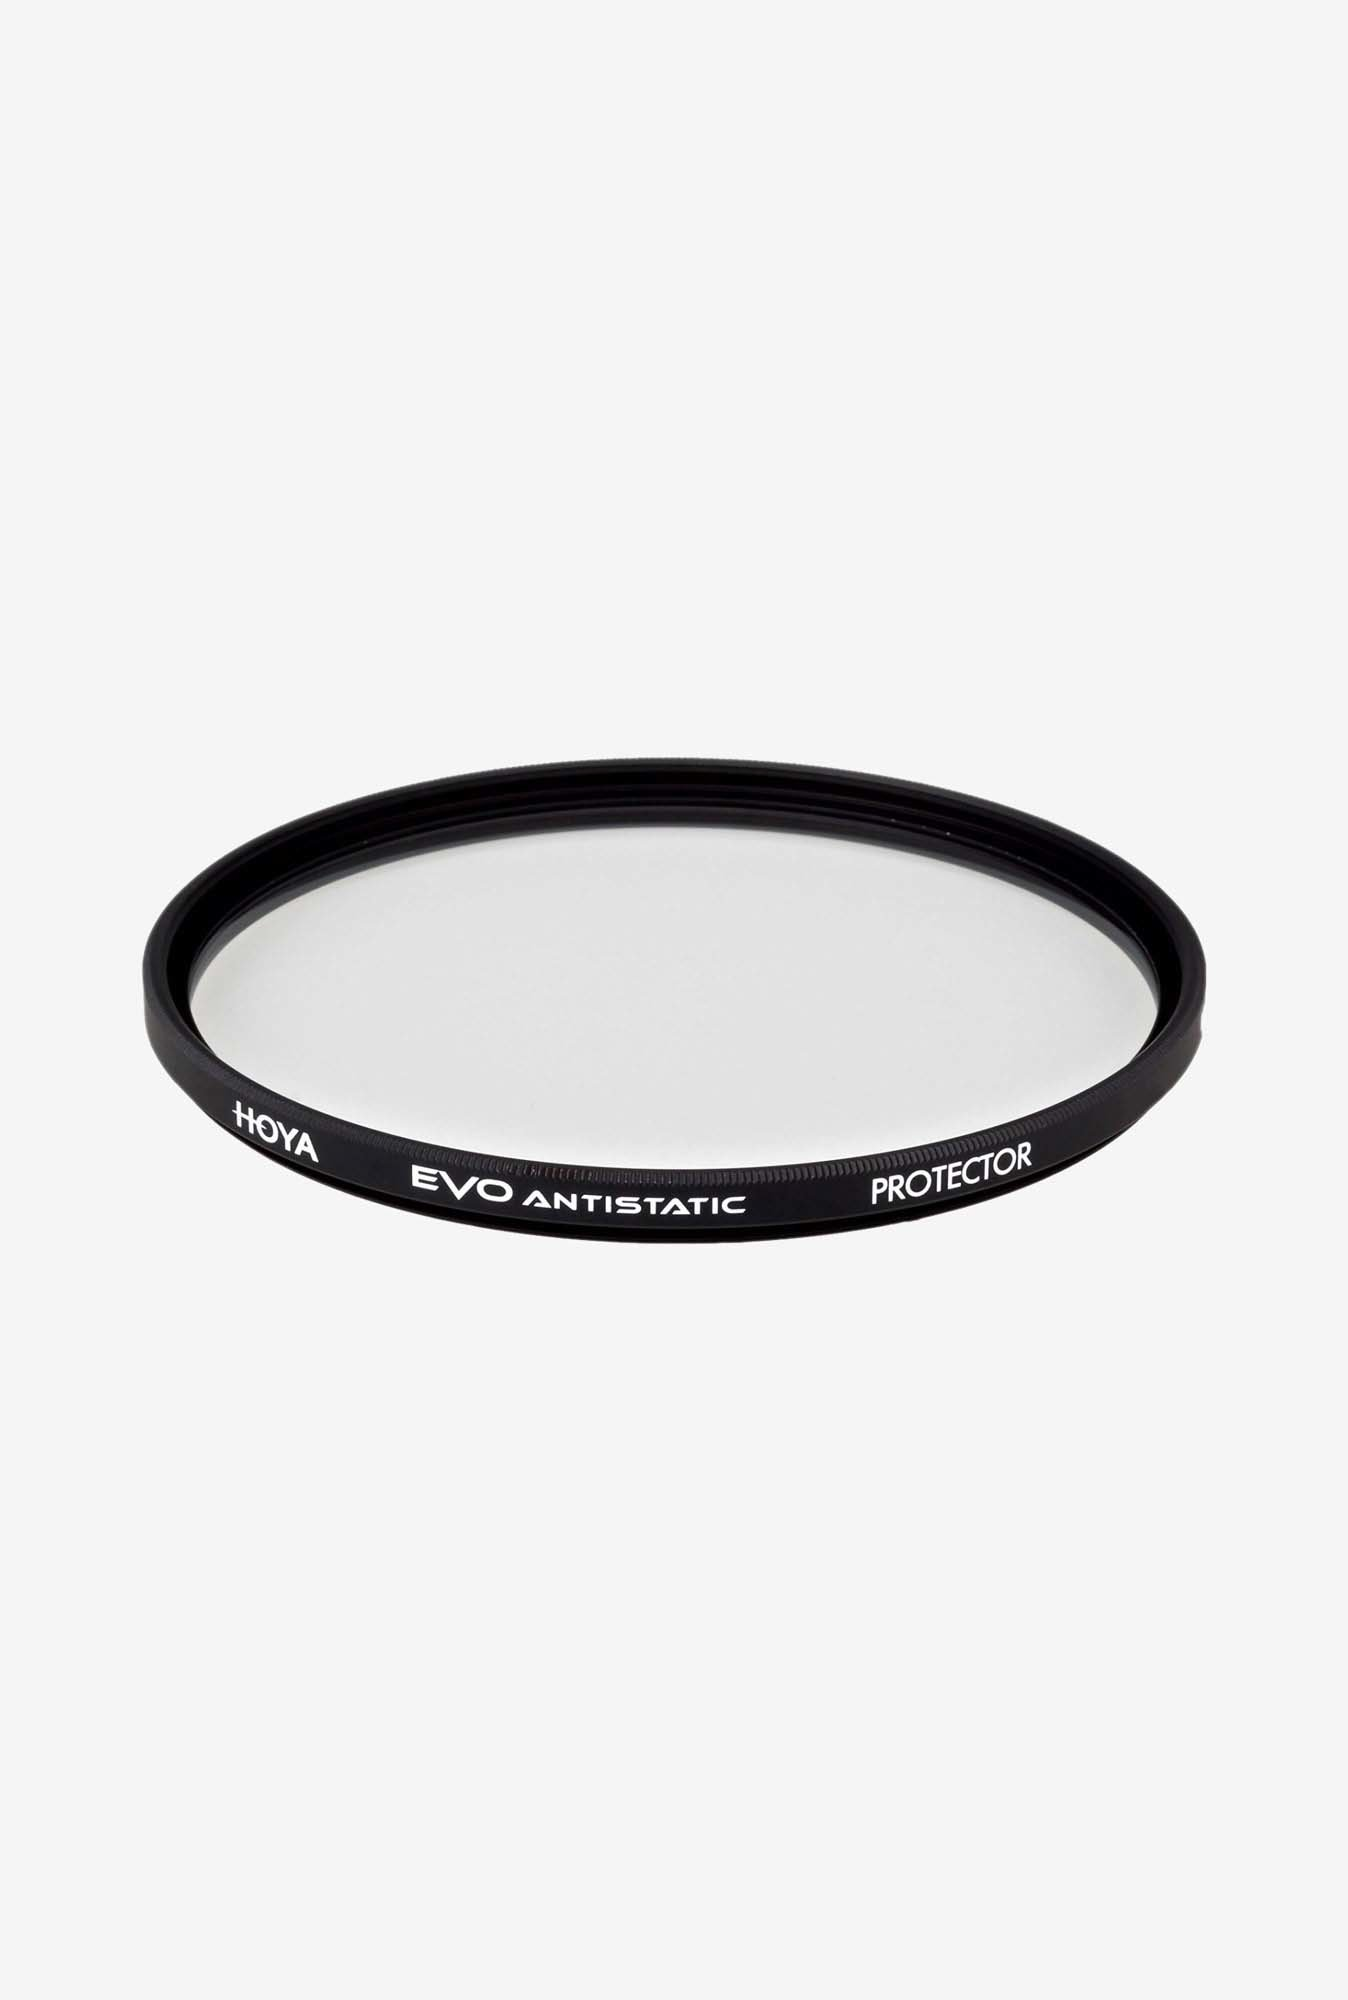 Hoya 52mm Evo Antistatic Protector Frame (Black)